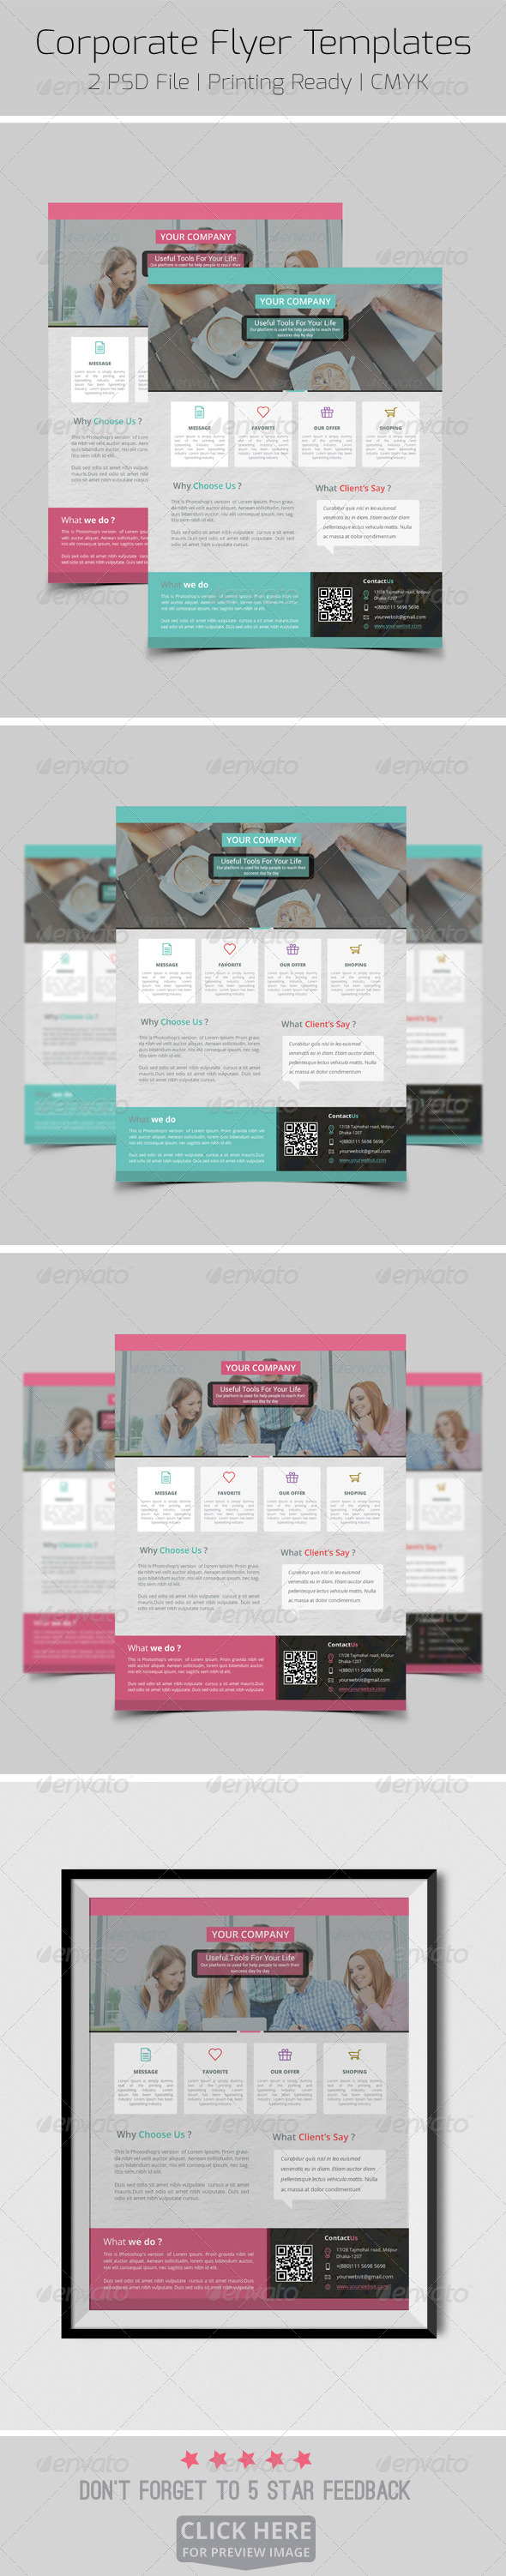 GraphicRiver Corporate Flyer Templates 8184622